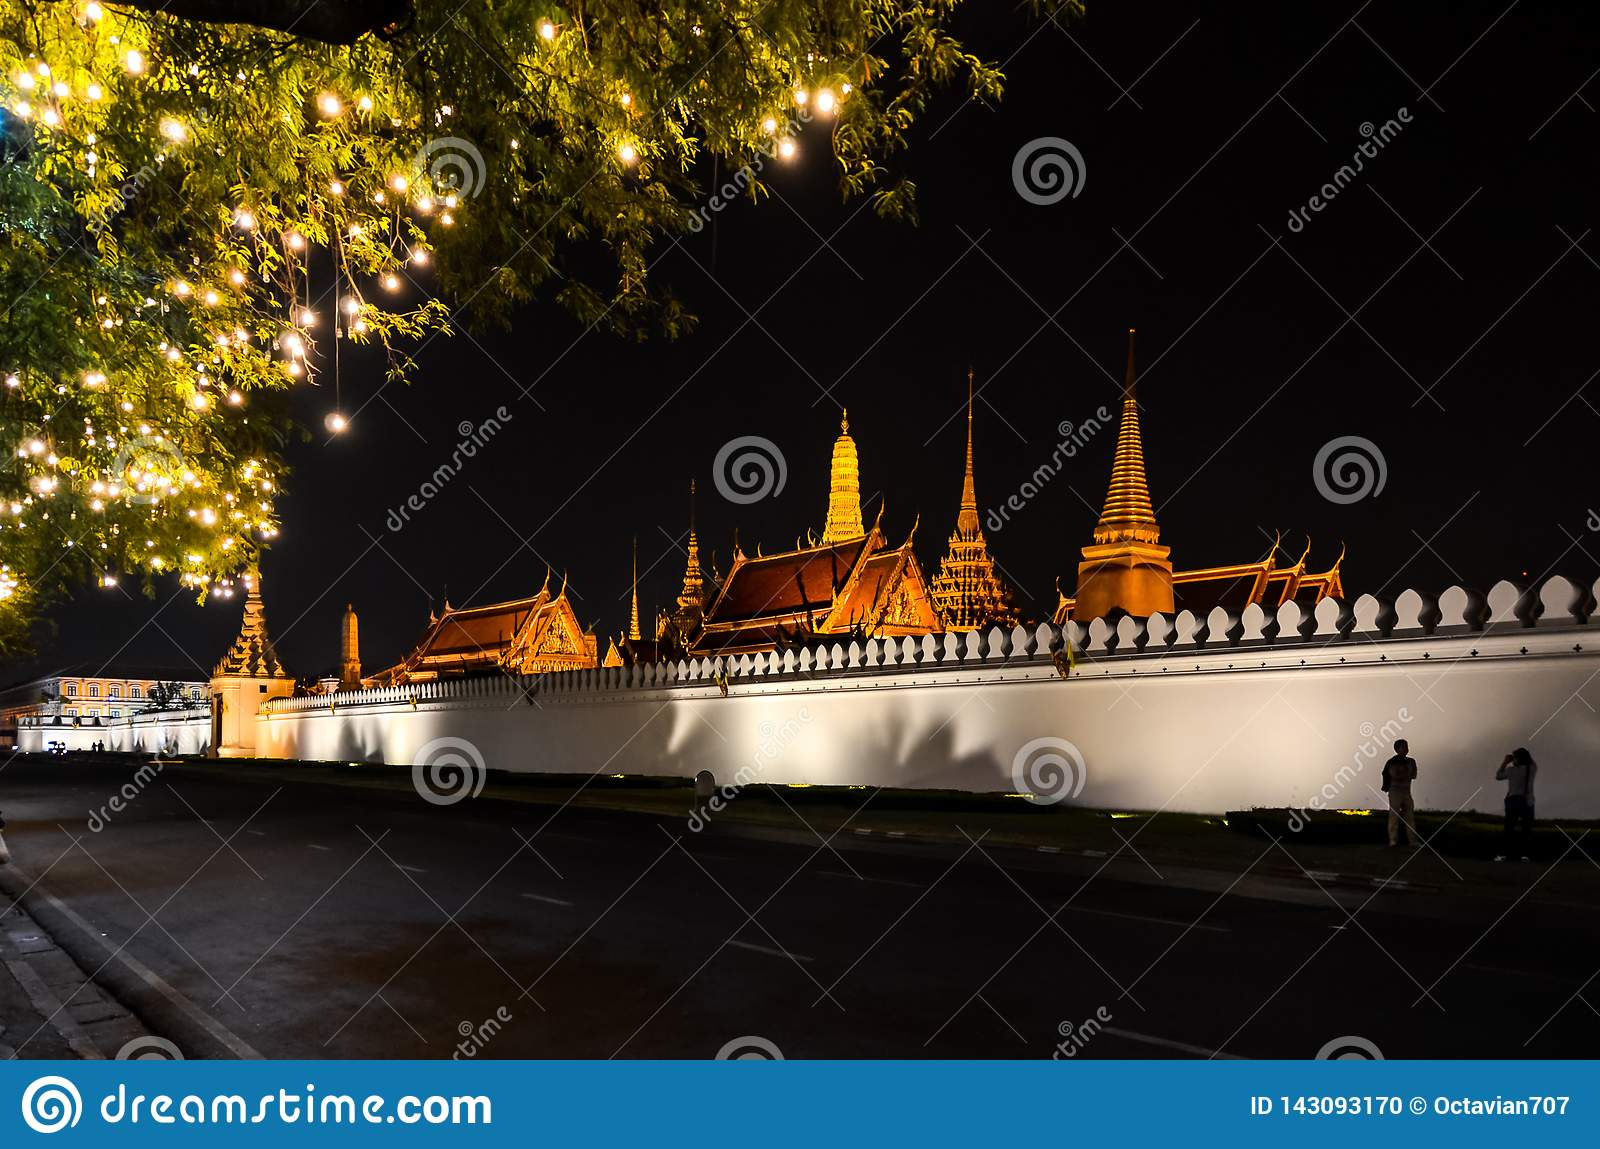 Kings palace from outside in Thailand at night